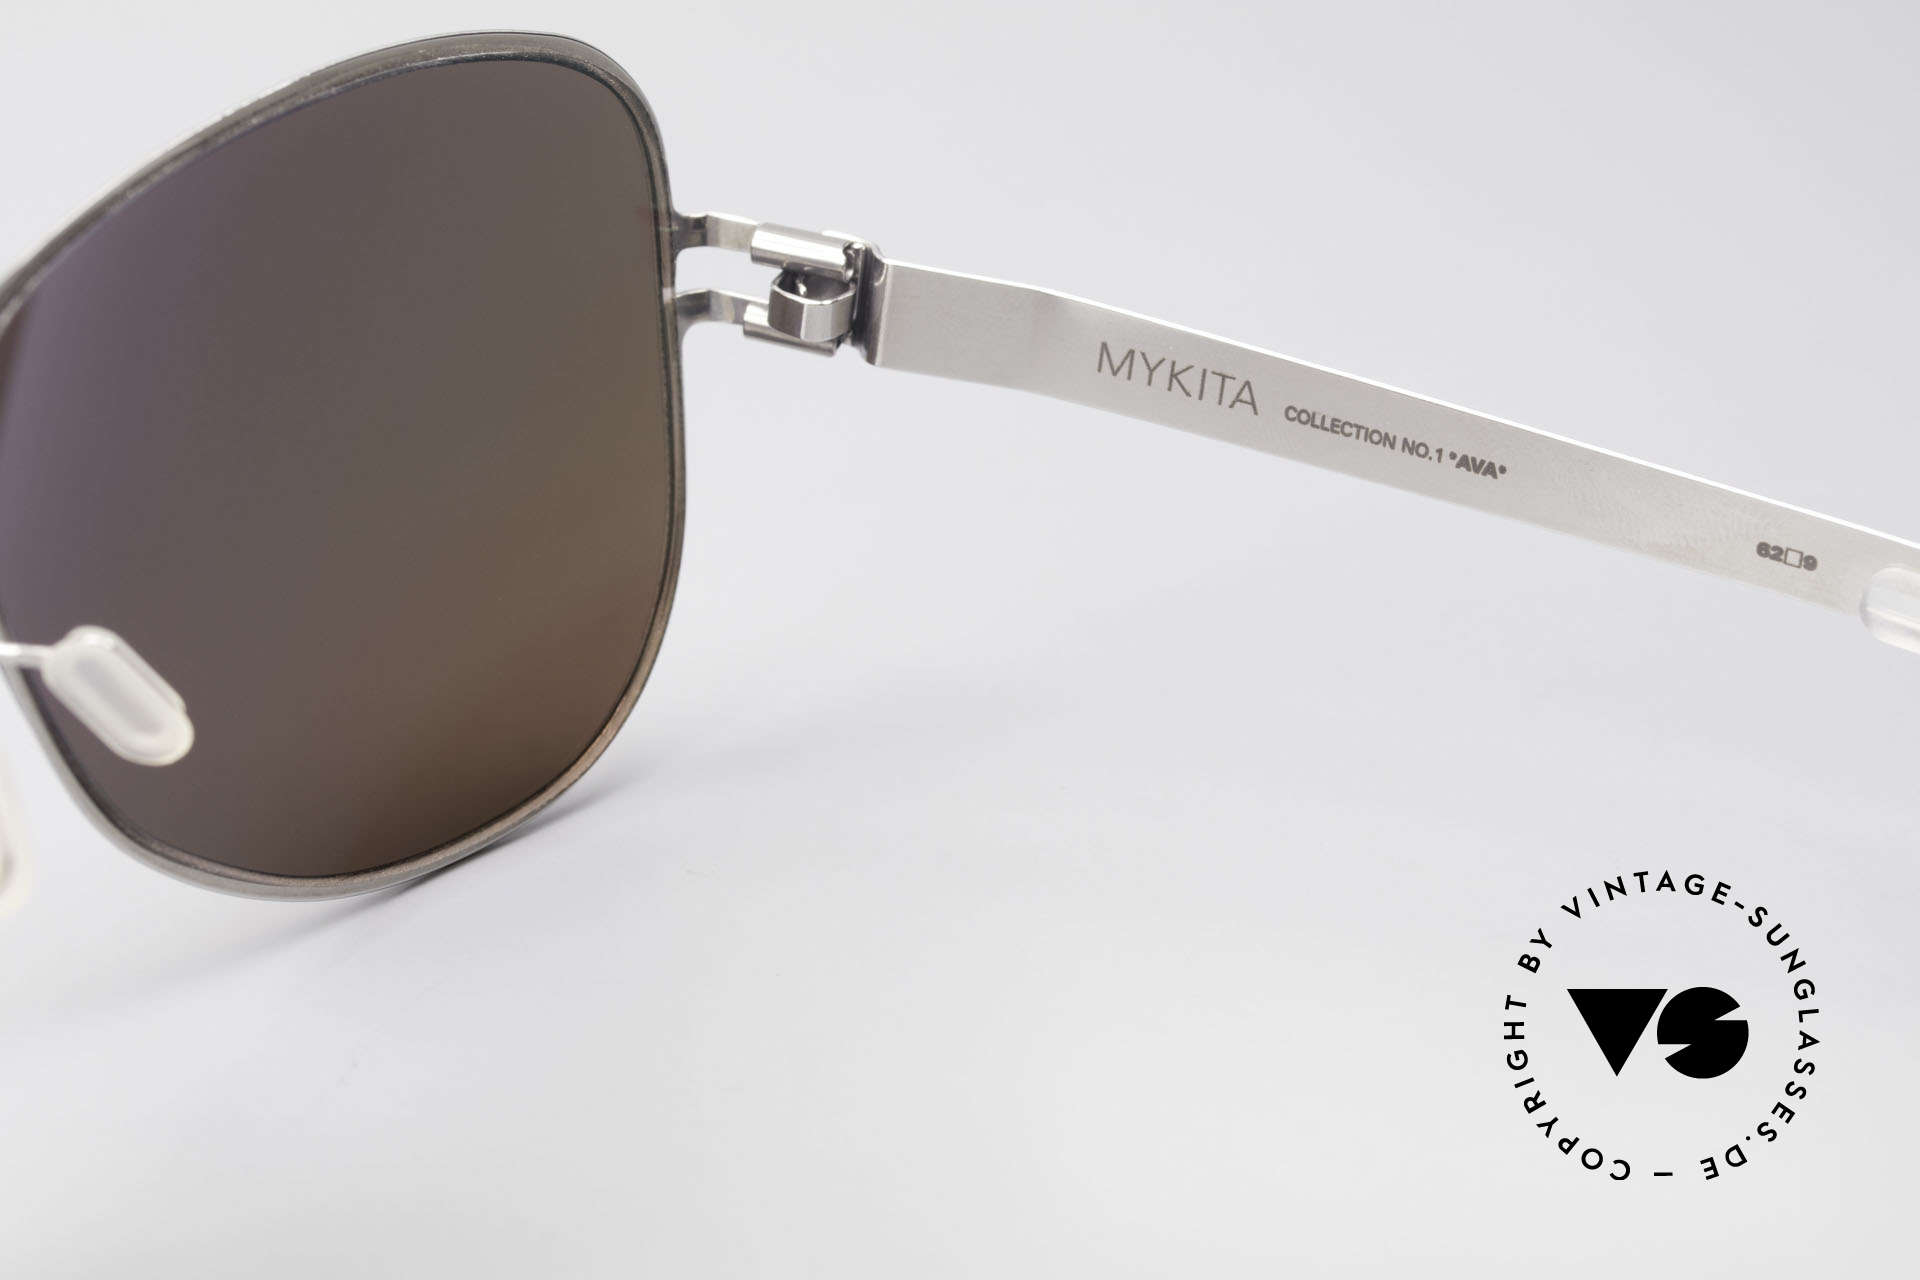 Mykita Ava Ladies Polarized Shades 2007's, thus, now available from us (unworn and with orig. case), Made for Women